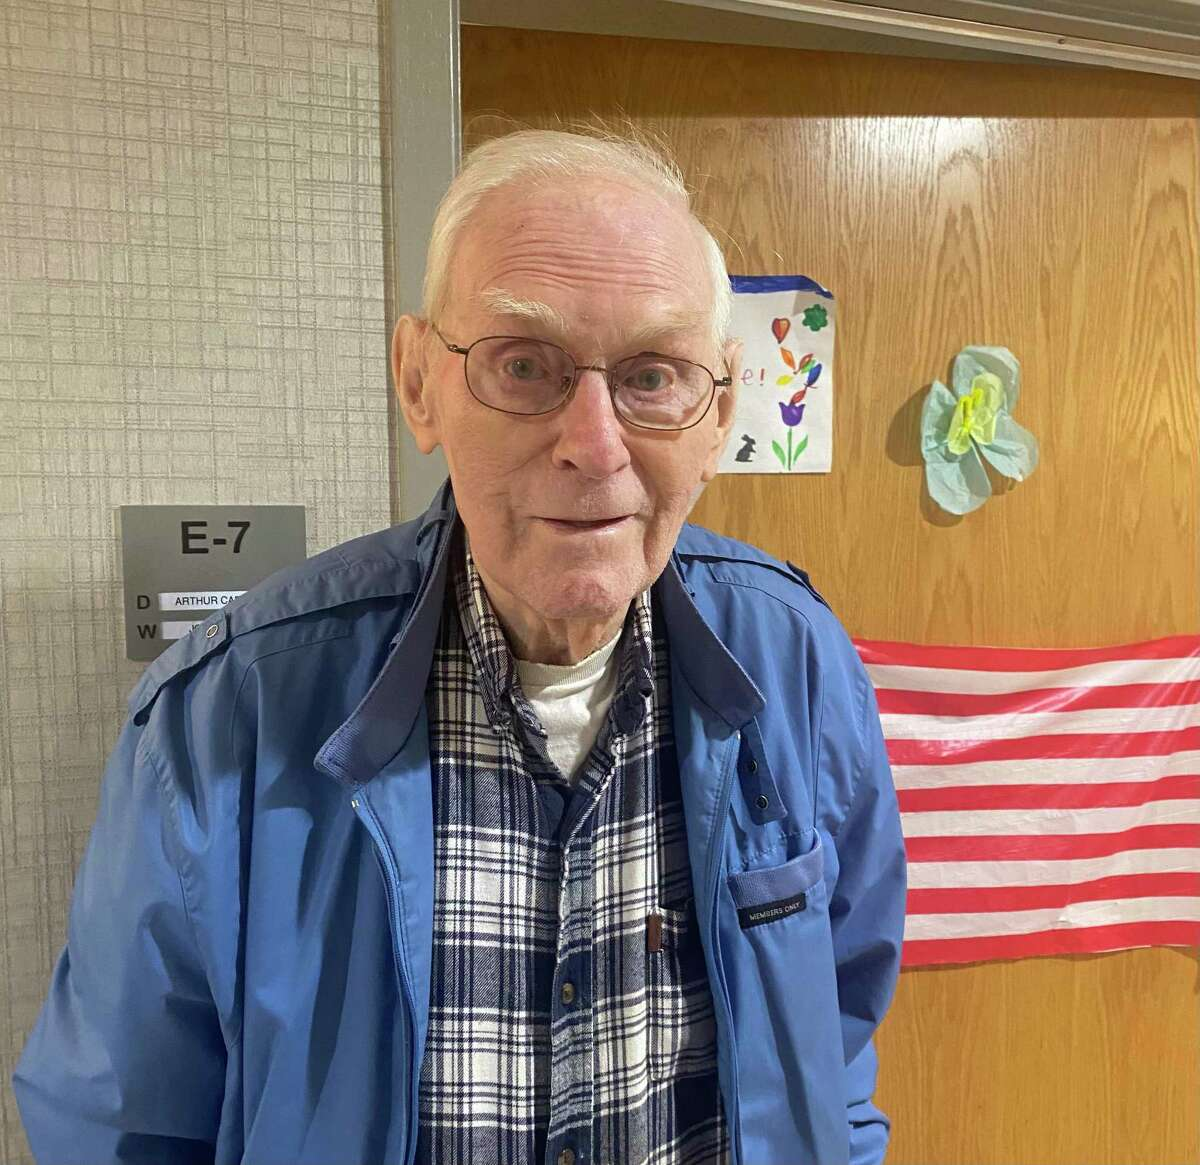 The Candlewood Valley Health and Rehabilitation center in New Milford has announced the winners of its annual senior writing contest. One of the winners is Arthur B. Carlson.